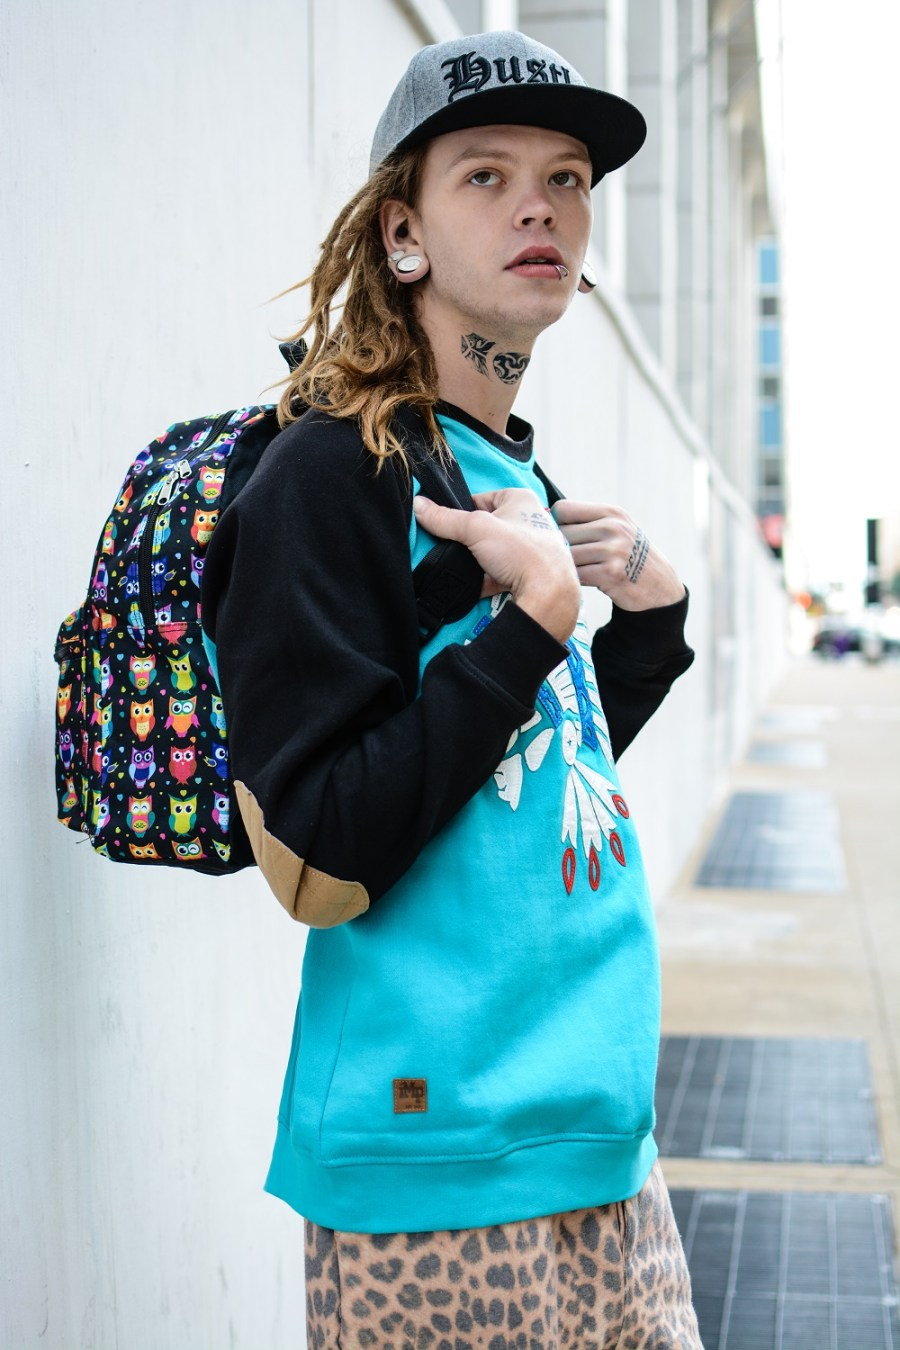 Wade by Calvin Brockington. Look 4: Cap: Cotton On Owl multi colored backpack: Star Point, By Mojo Indian Chief color blocked sweatshirt: Imperious Leopard printed sweatpants: 21 Men